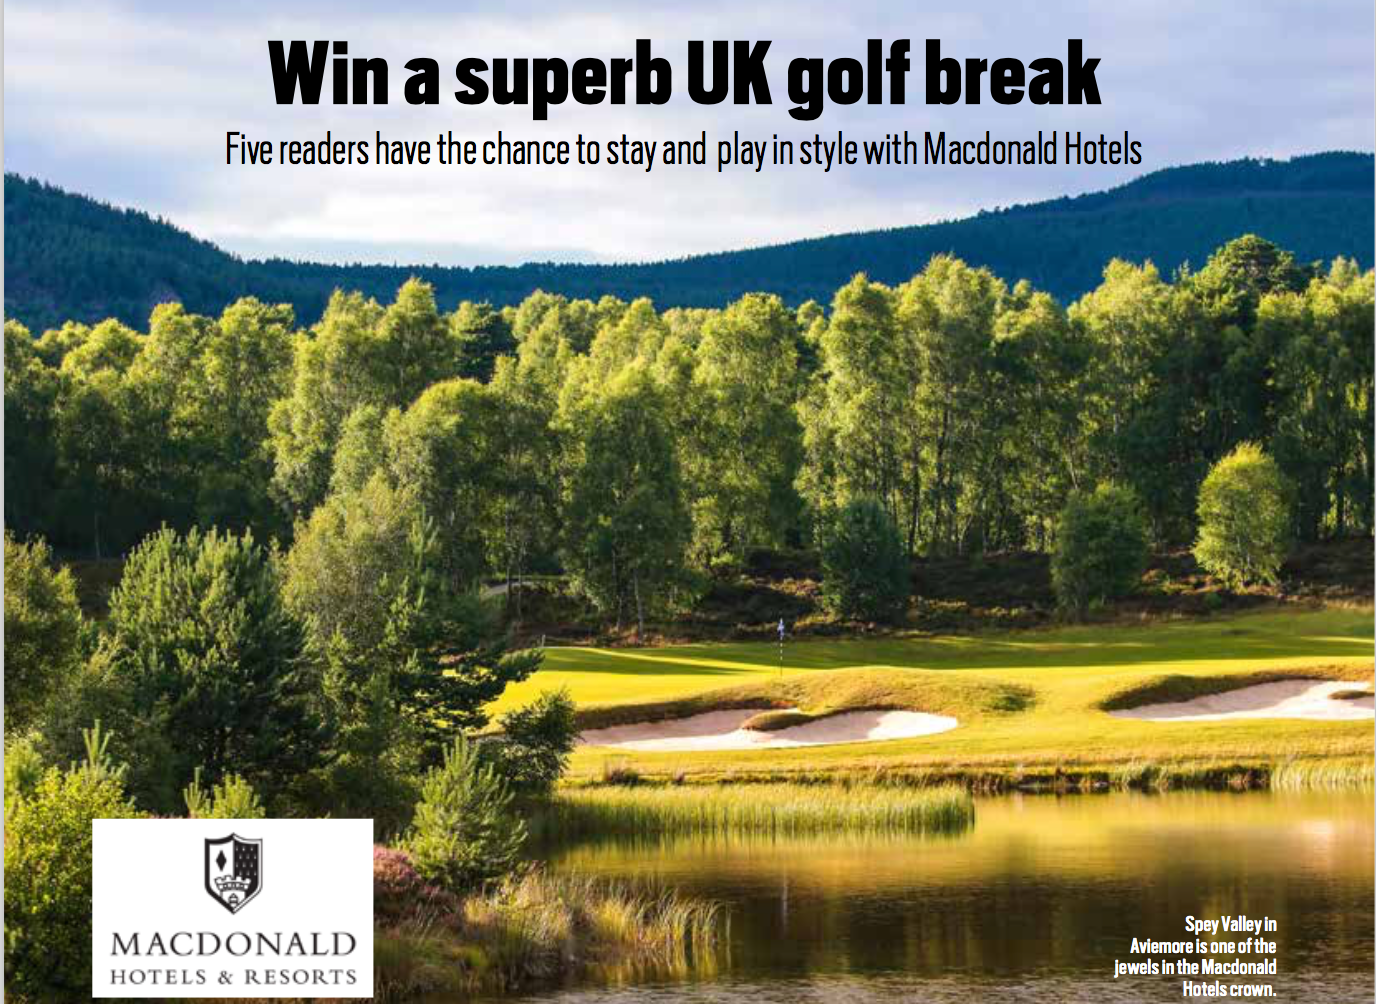 Win a superb UK golf break sweepstakes